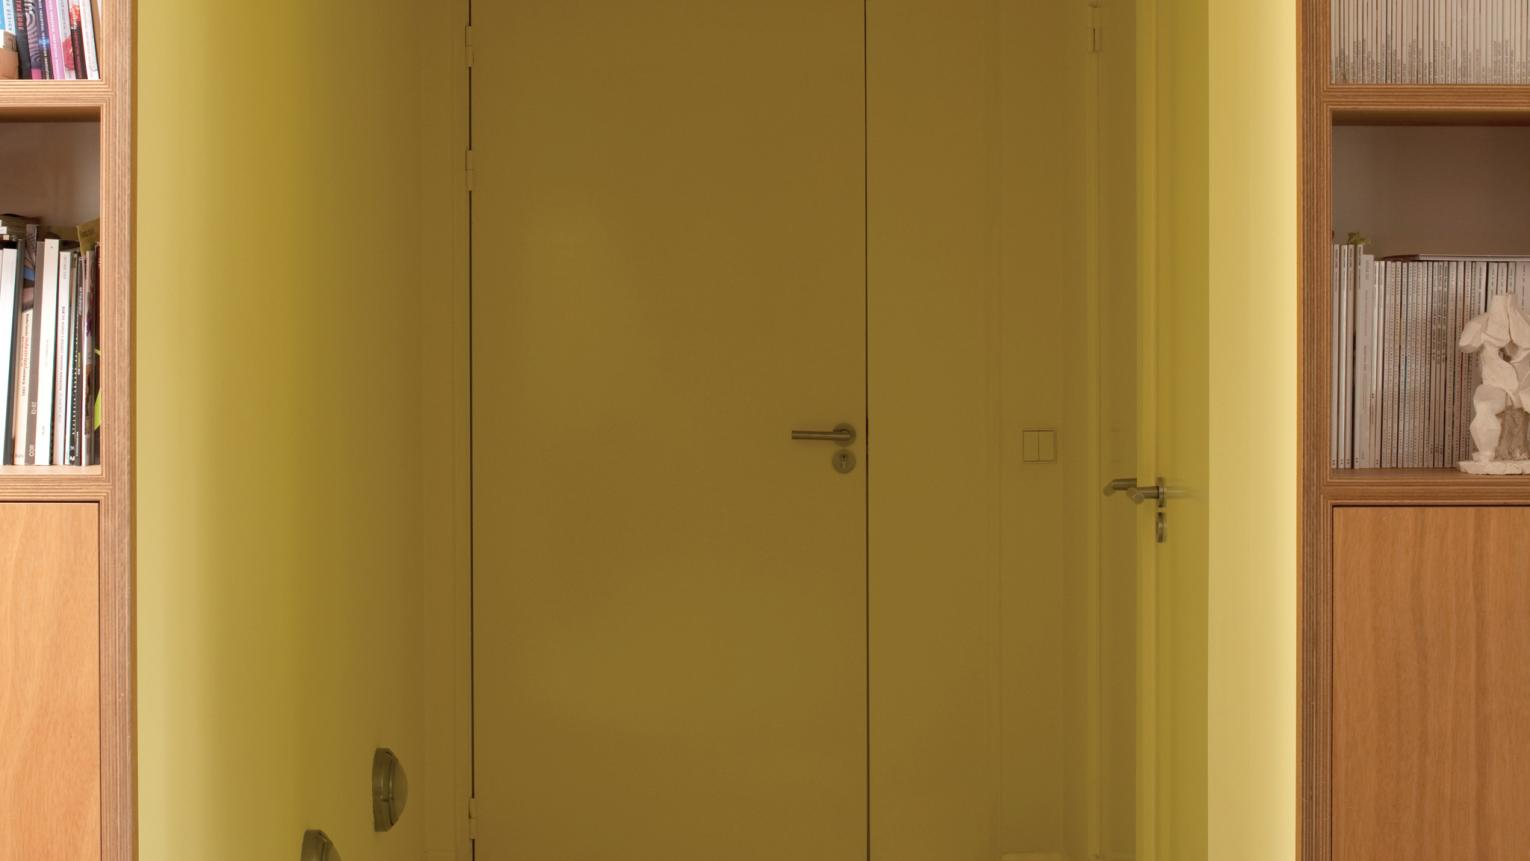 Paint a corridor from floor-to-ceiling in one shade of yellow.